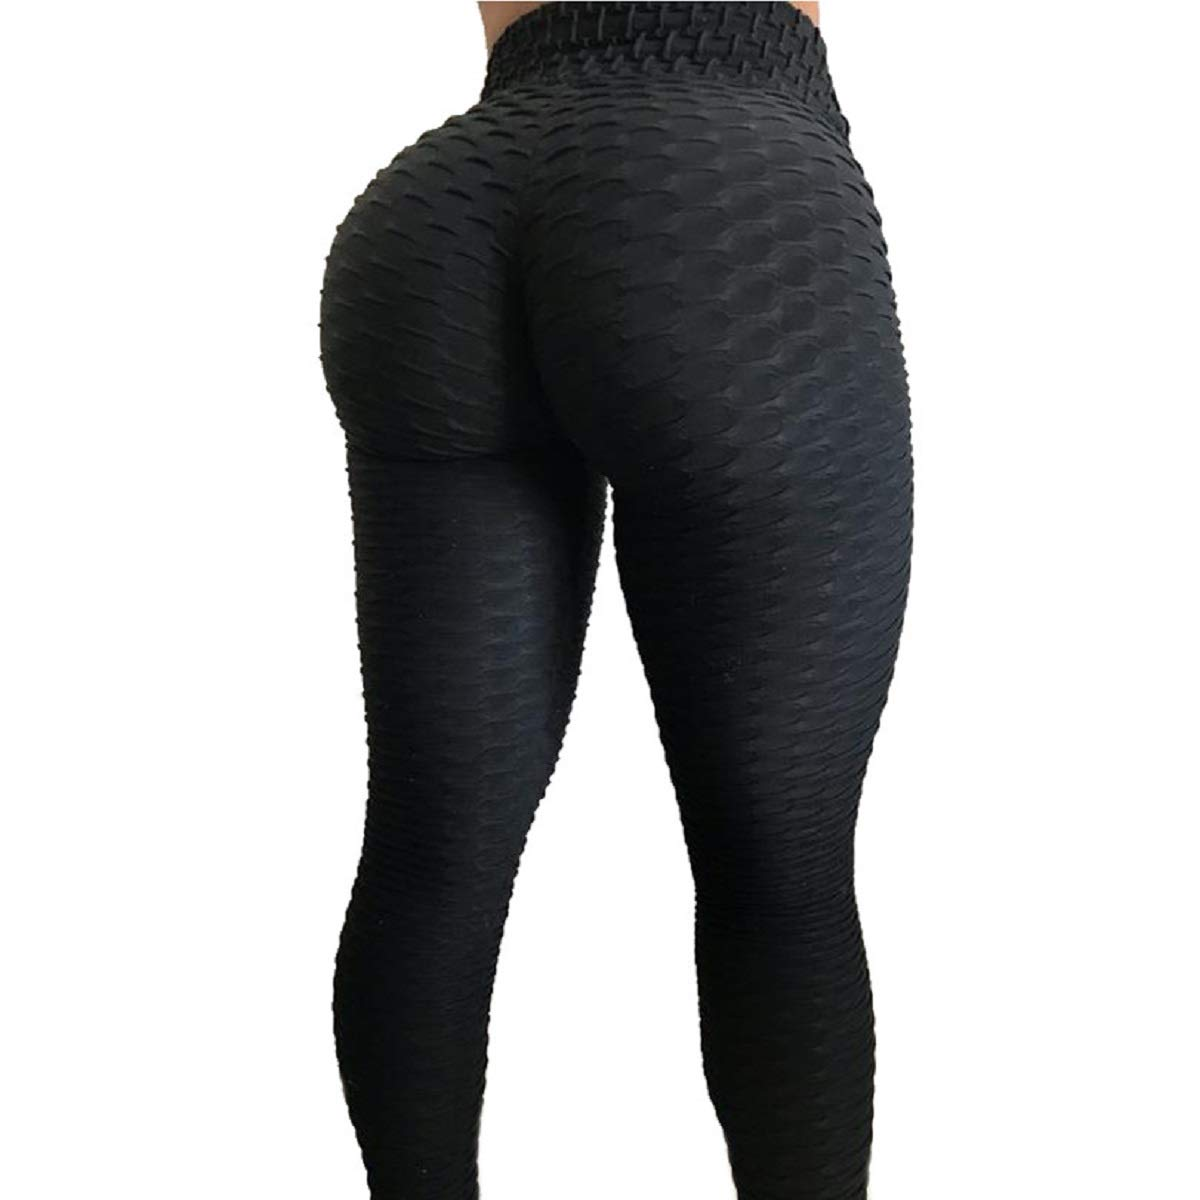 2de22f06251f8 Amazon.com: Women's Workout Leggings High Waist Yoga Tummy Control Booty  Pants Running Butt Lift Tights Plus Size: Clothing